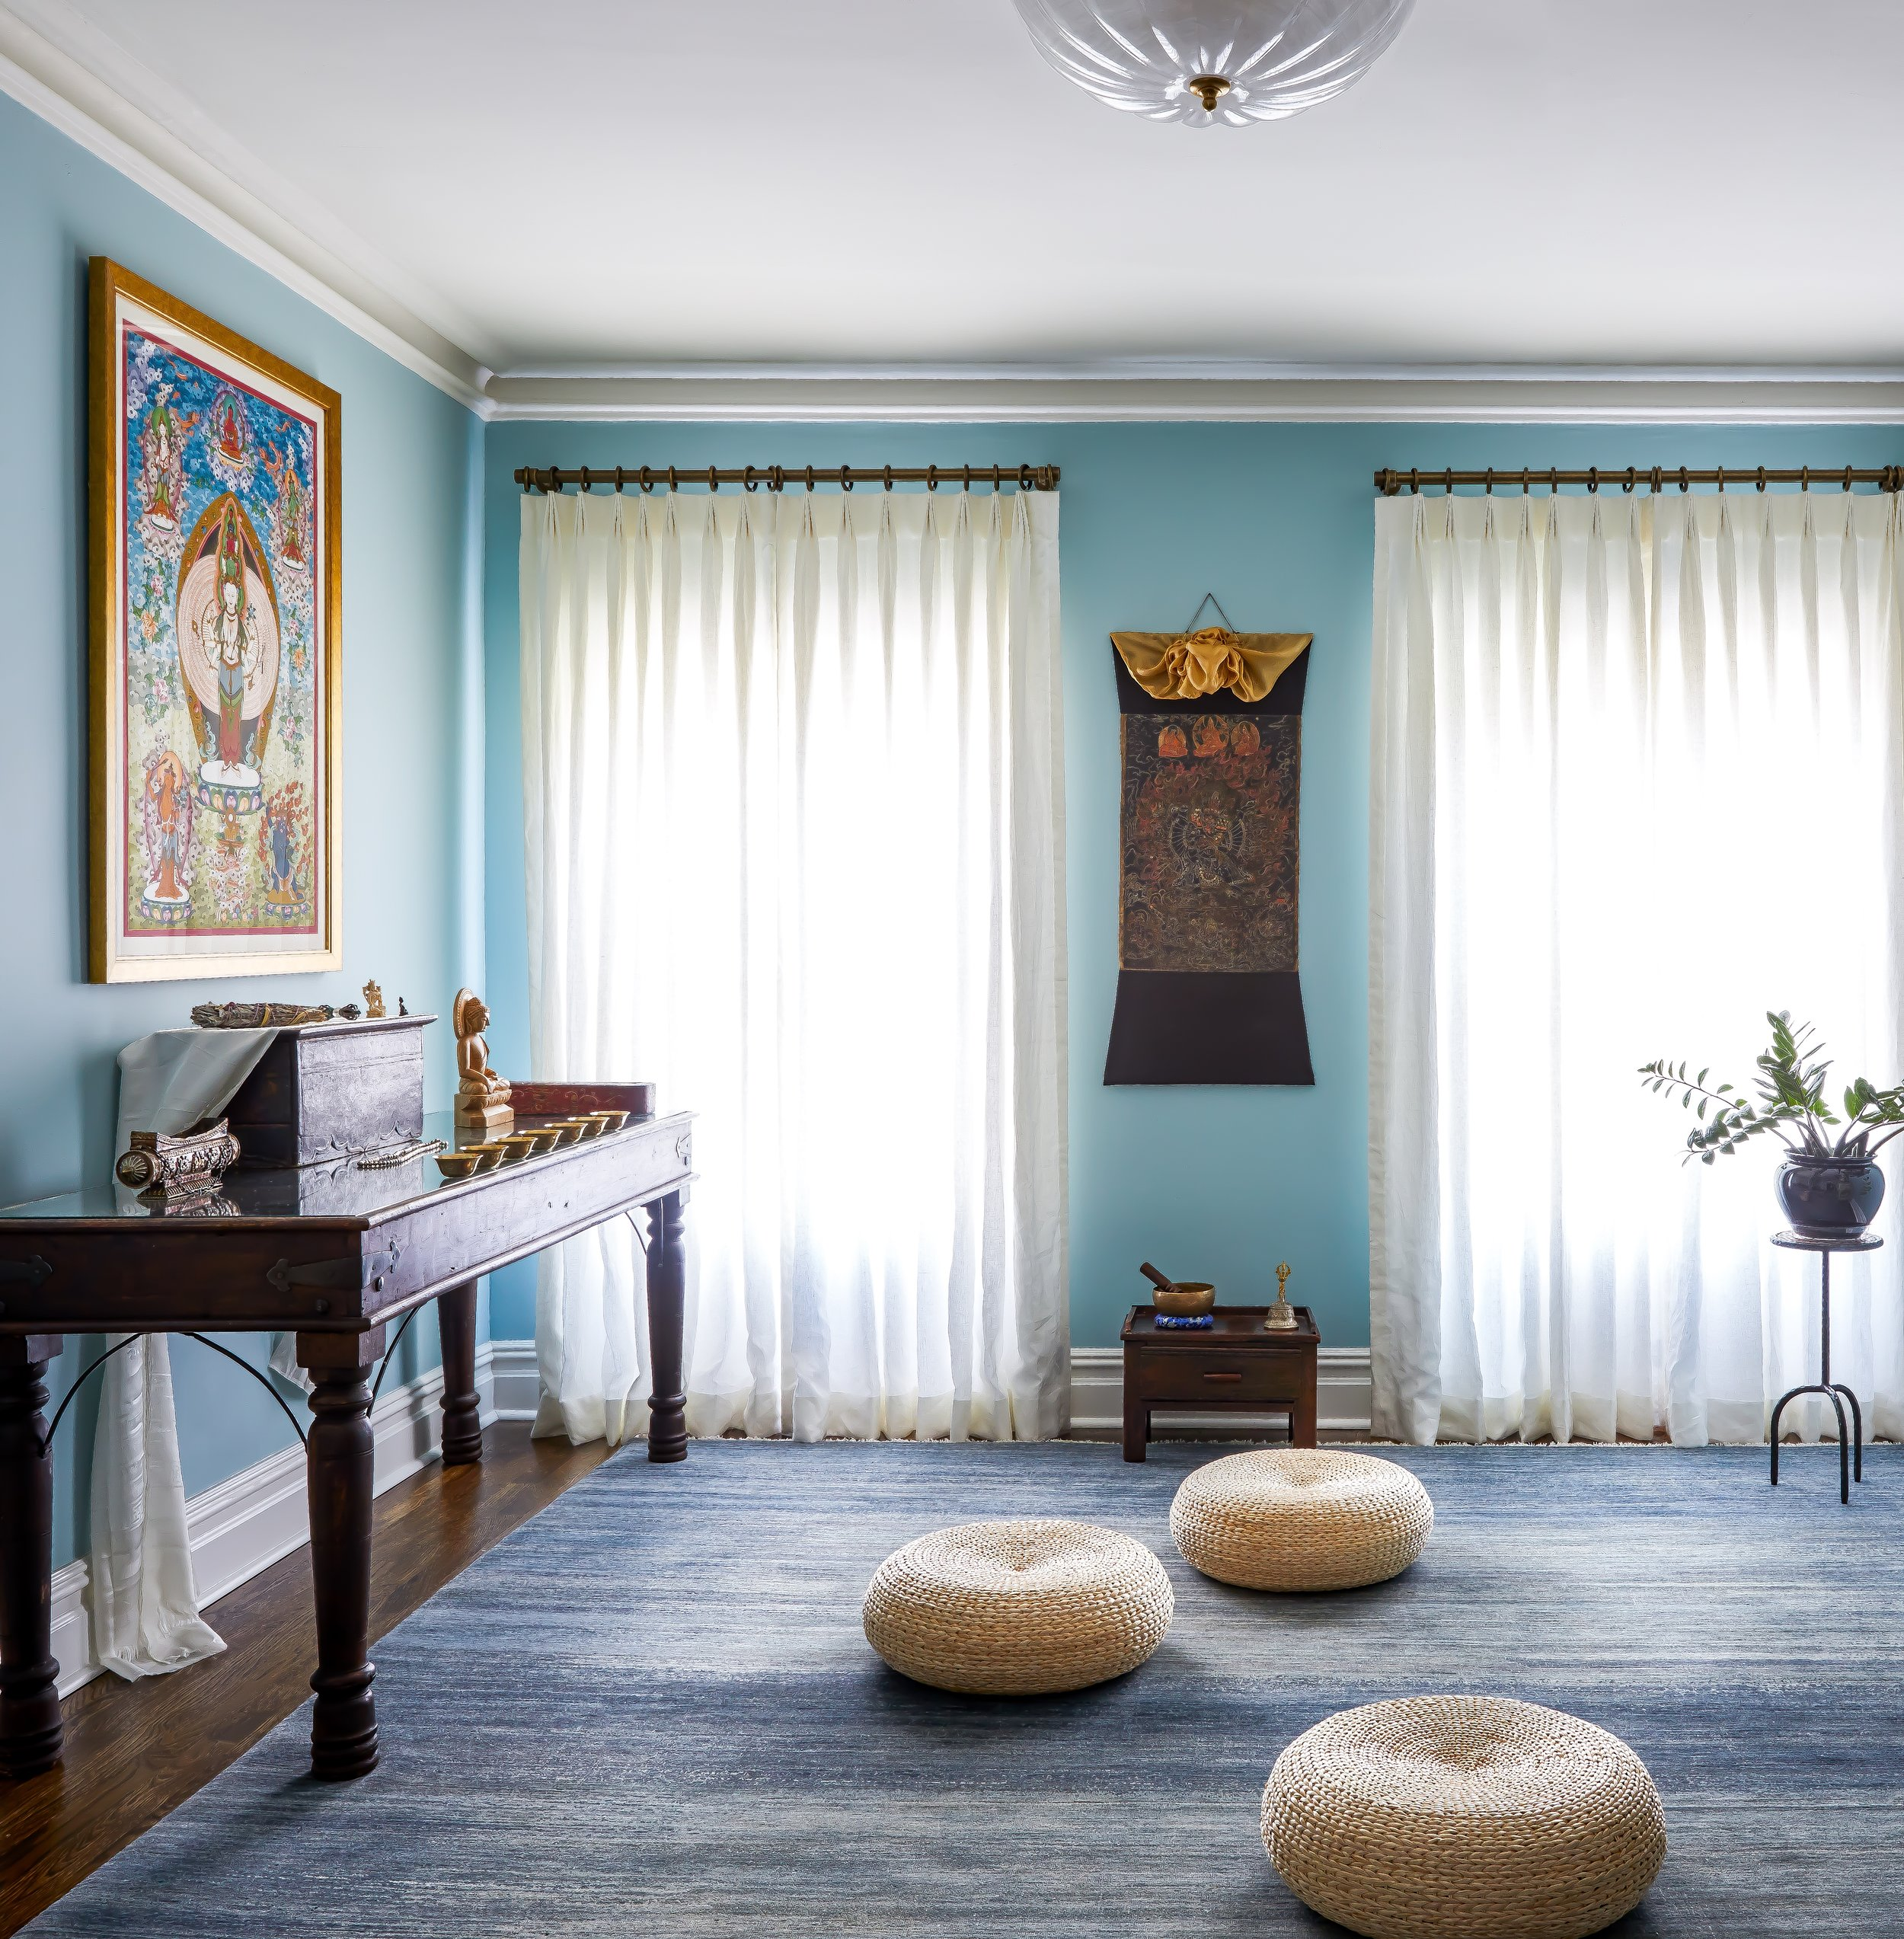 A meditation room in a Brooklyn townhouse with straw zafus, a console made from a reclaimed door, window treatments from The Shade Store in an ivory linen, and an 18th c. scroll painting - or Thangka - sourced by Leiko Coyle, an expert in South and Southeast Asian art.